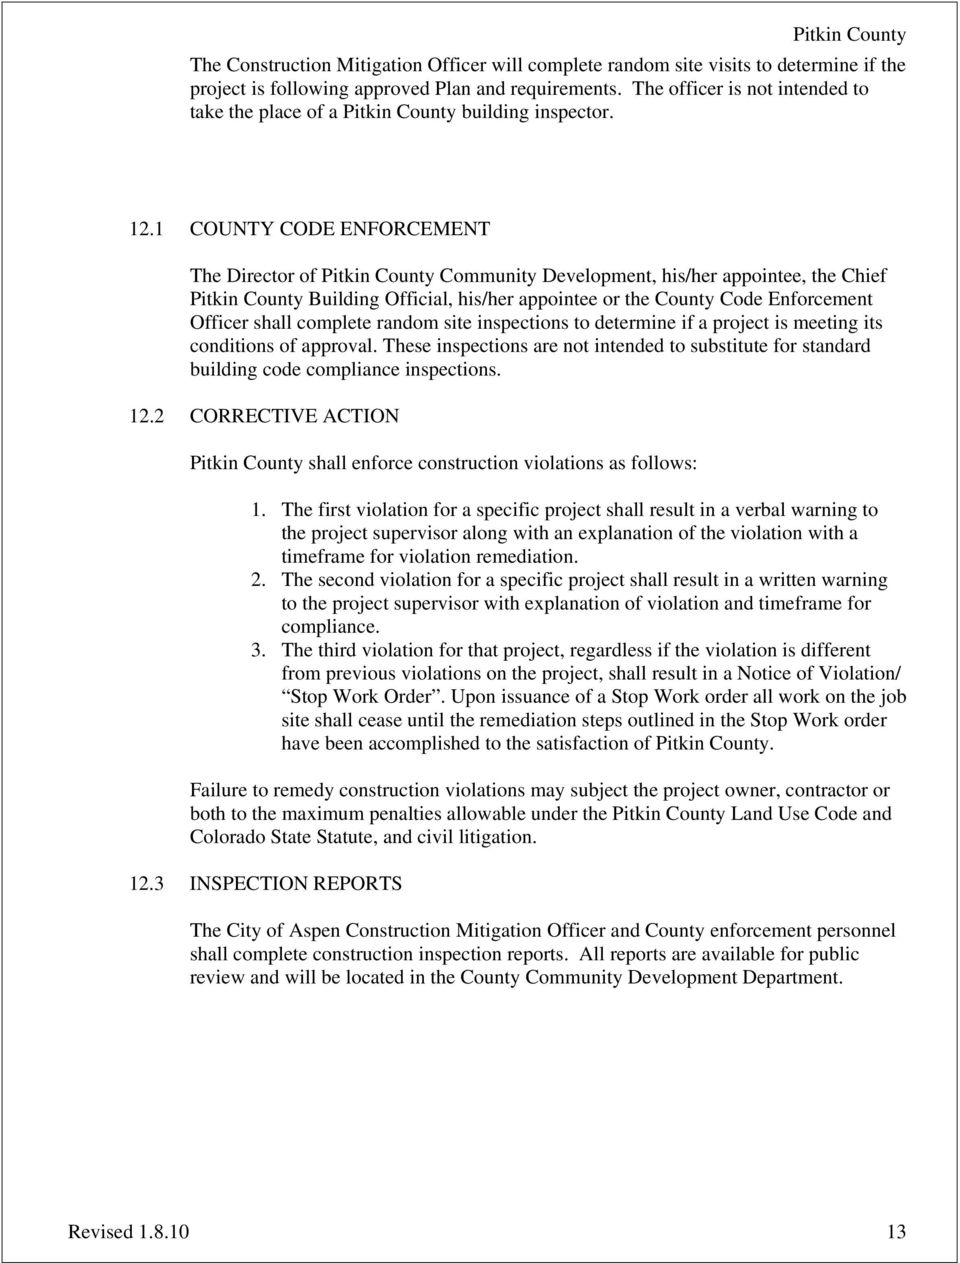 1 COUNTY CODE ENFORCEMENT The Director of Pitkin County Community Development, his/her appointee, the Chief Pitkin County Building Official, his/her appointee or the County Code Enforcement Officer